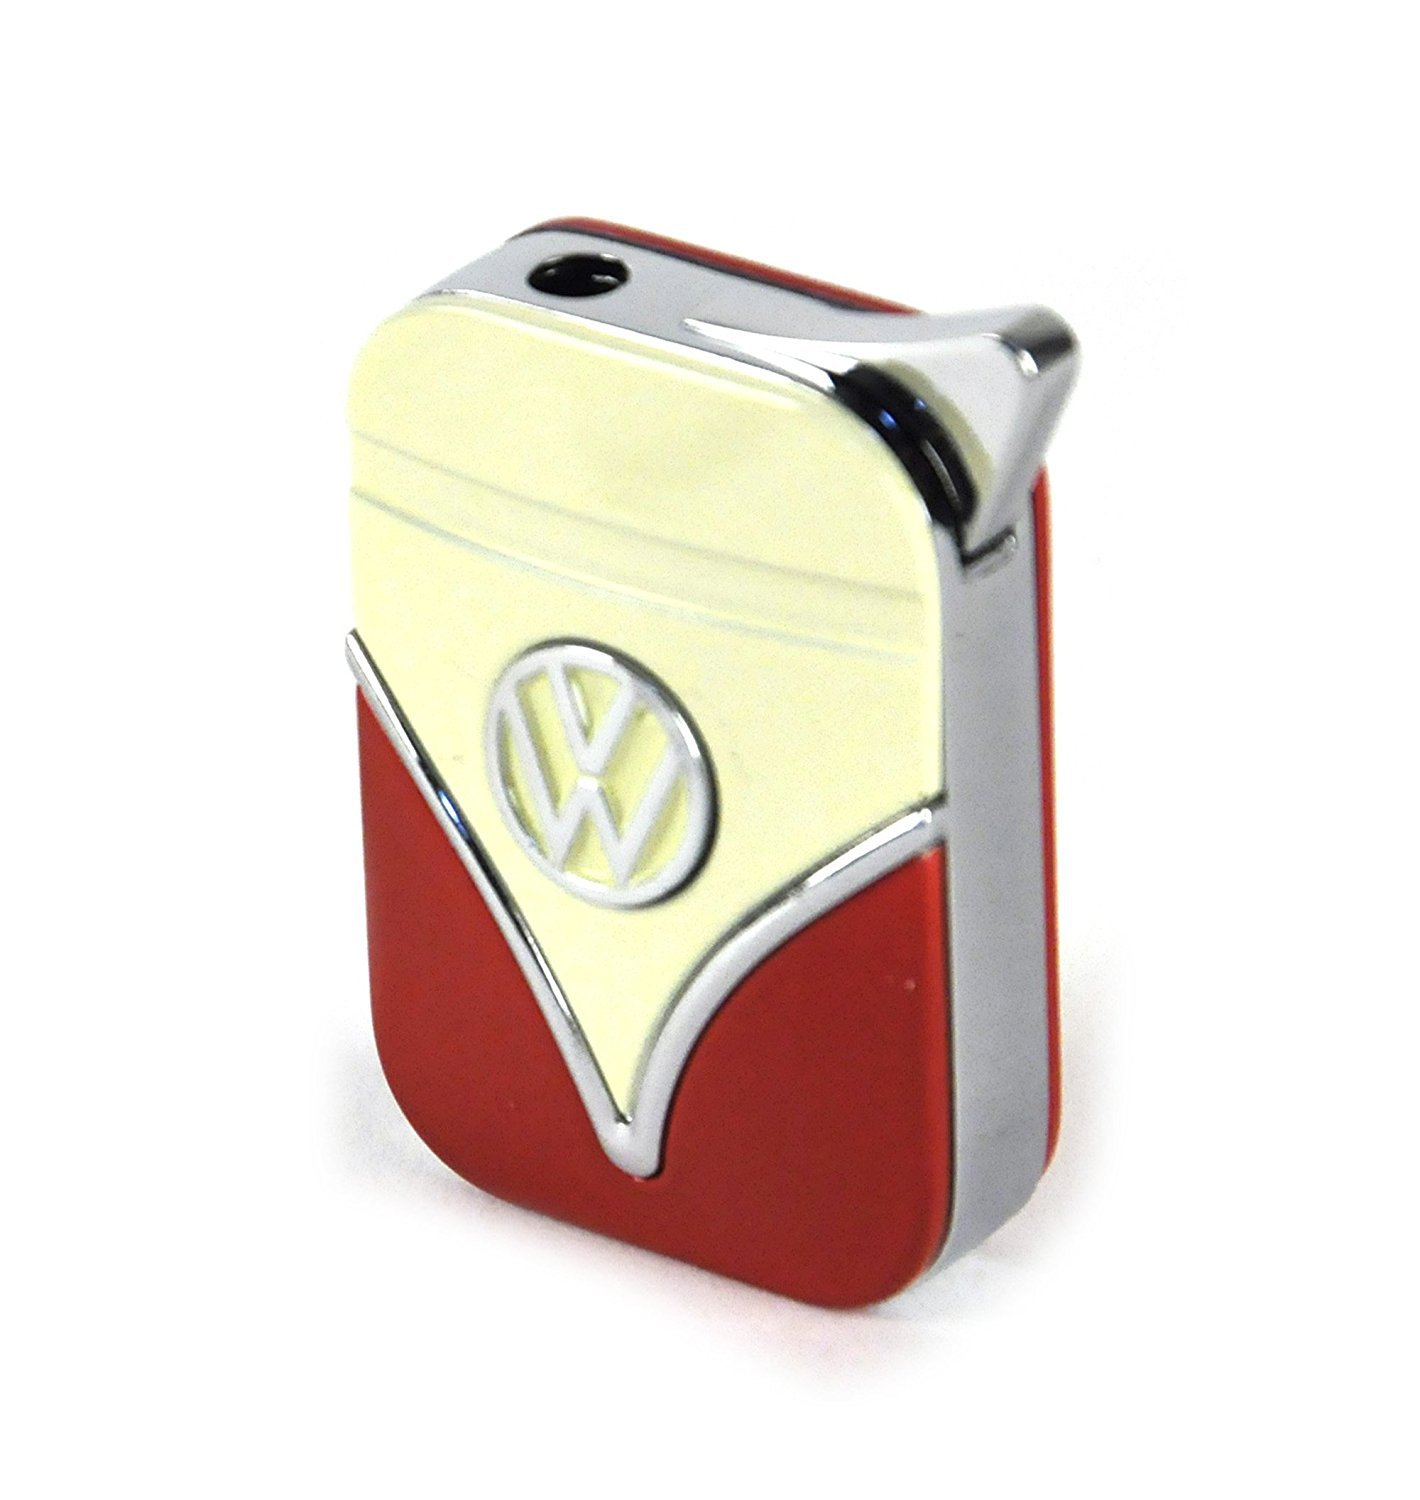 Genuine Volkswagen lighter in the front shield design VW Gas Refillable Cigar Cigarette Lighter